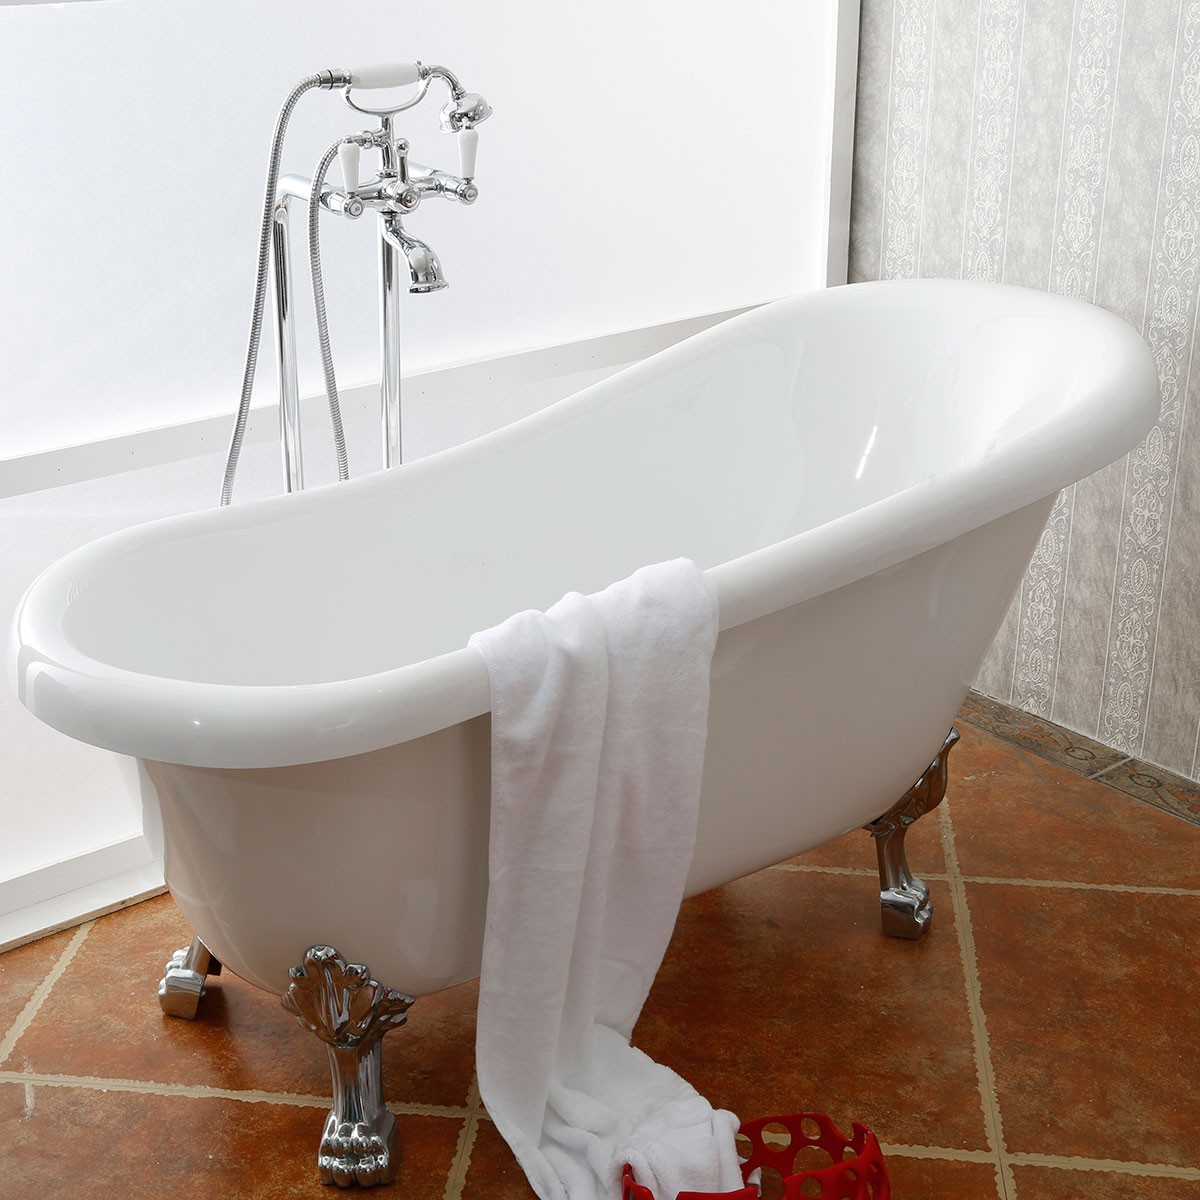 61 In Clawfoot Freestanding Bathtub - Acrylic White (DK-1912W)